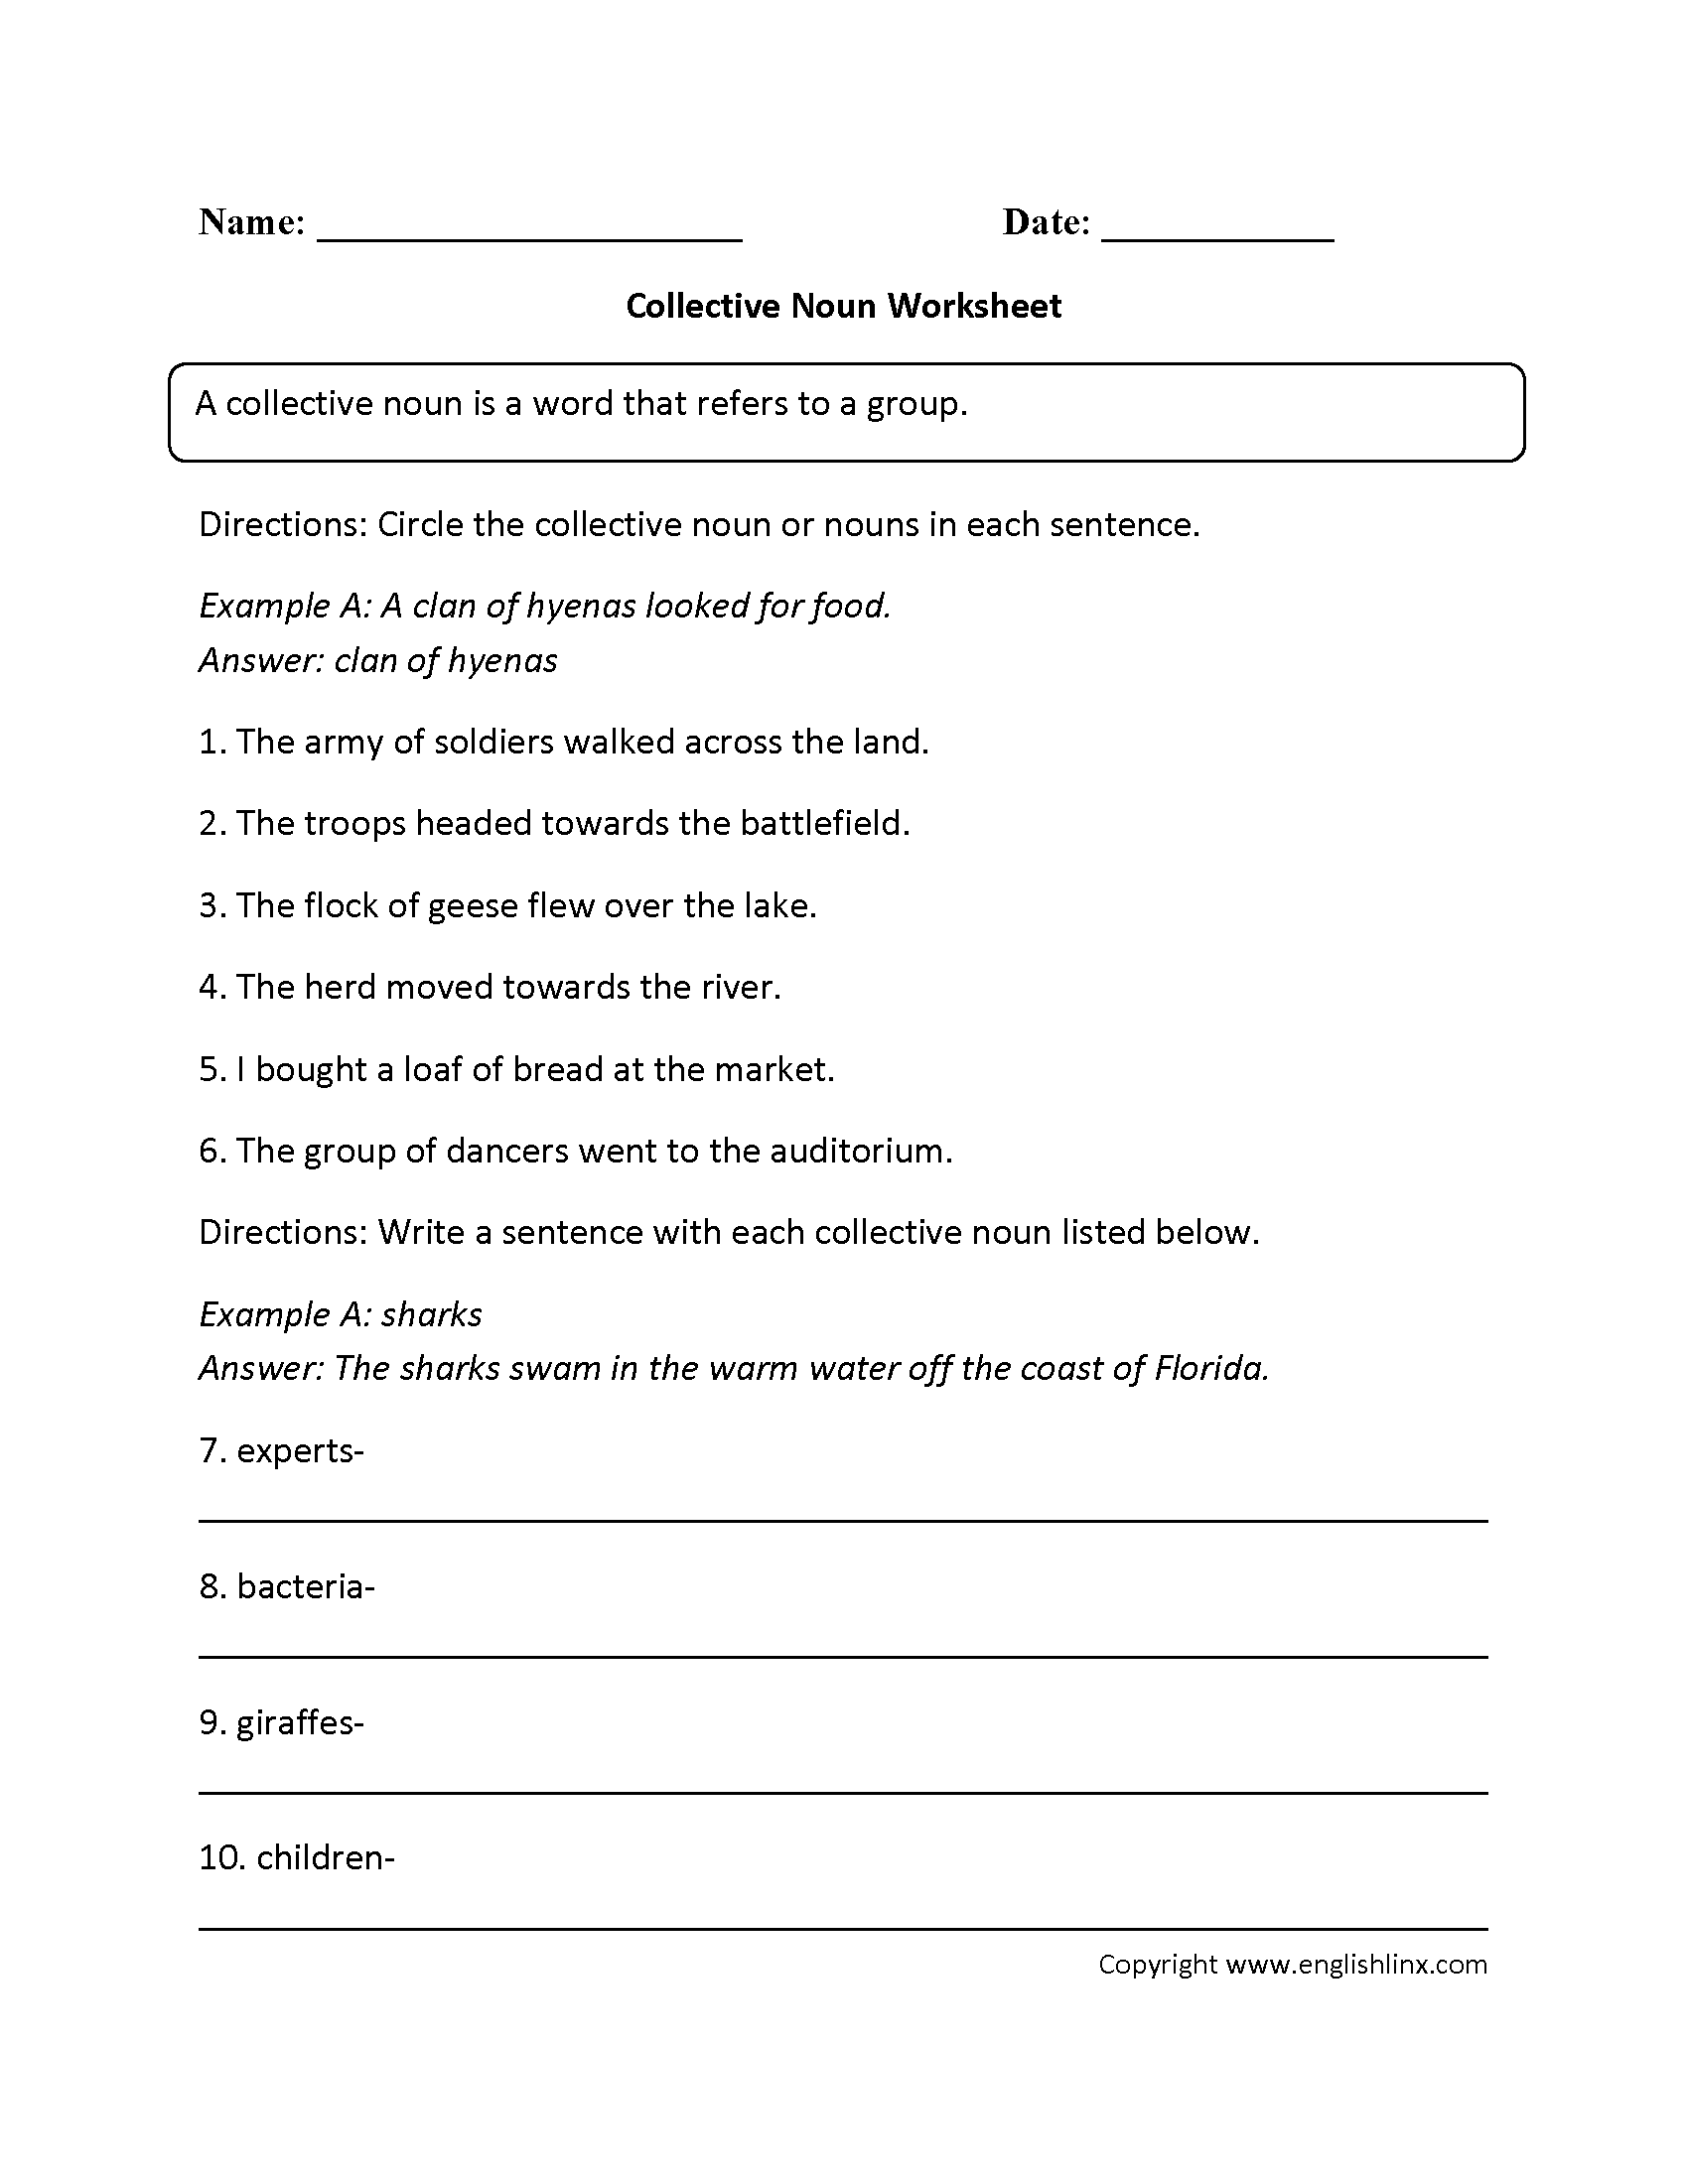 Worksheet On Nouns For Grade 9   Printable Worksheets and Activities for  Teachers [ 2200 x 1700 Pixel ]